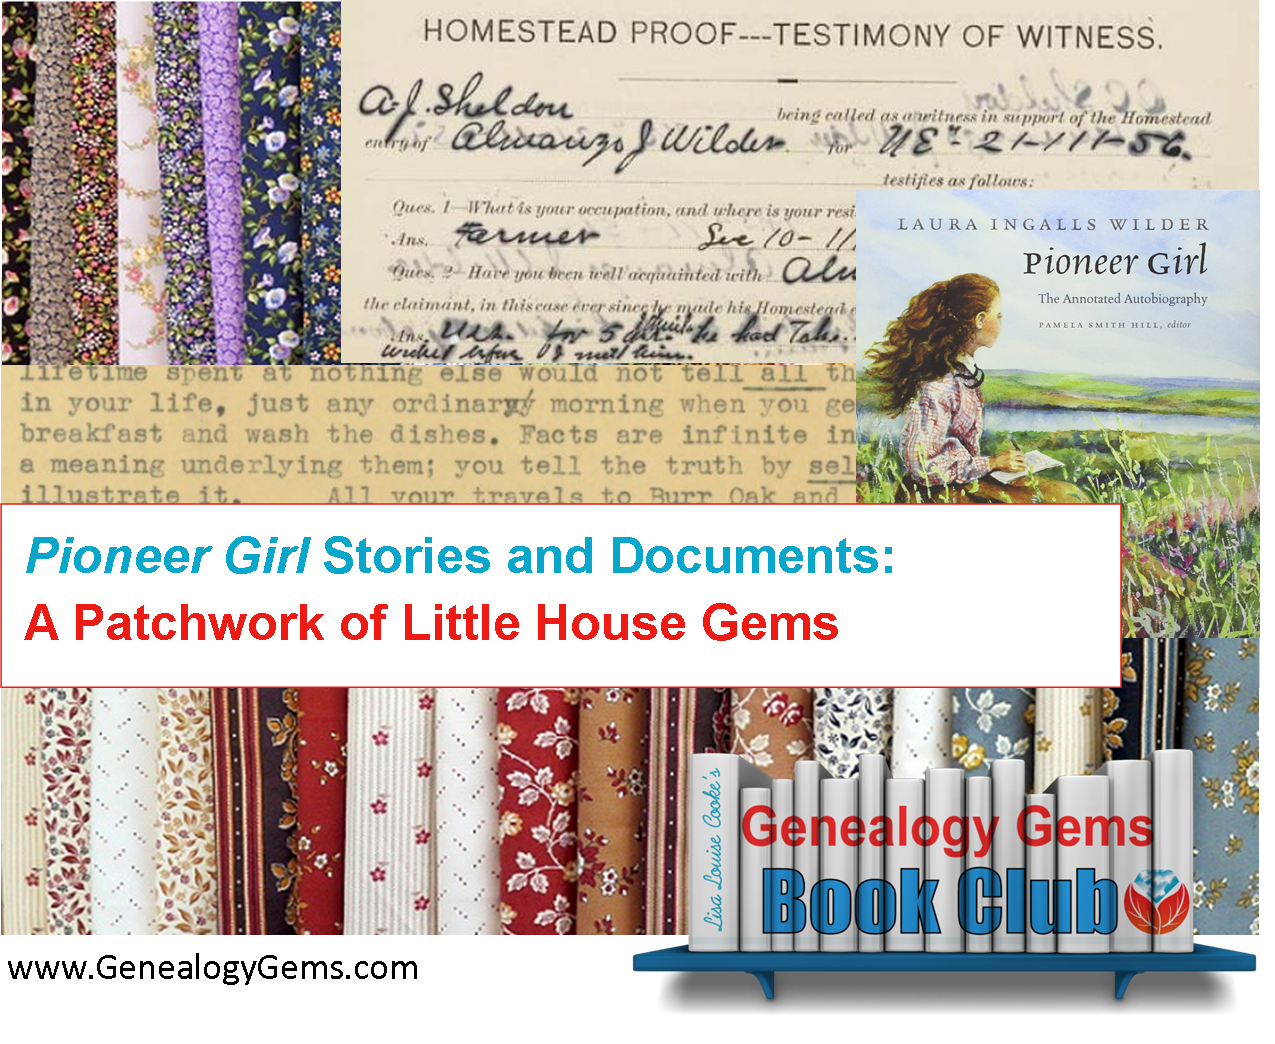 Laura Ingalls Wilder Stories: A Patchwork of Little House Gems